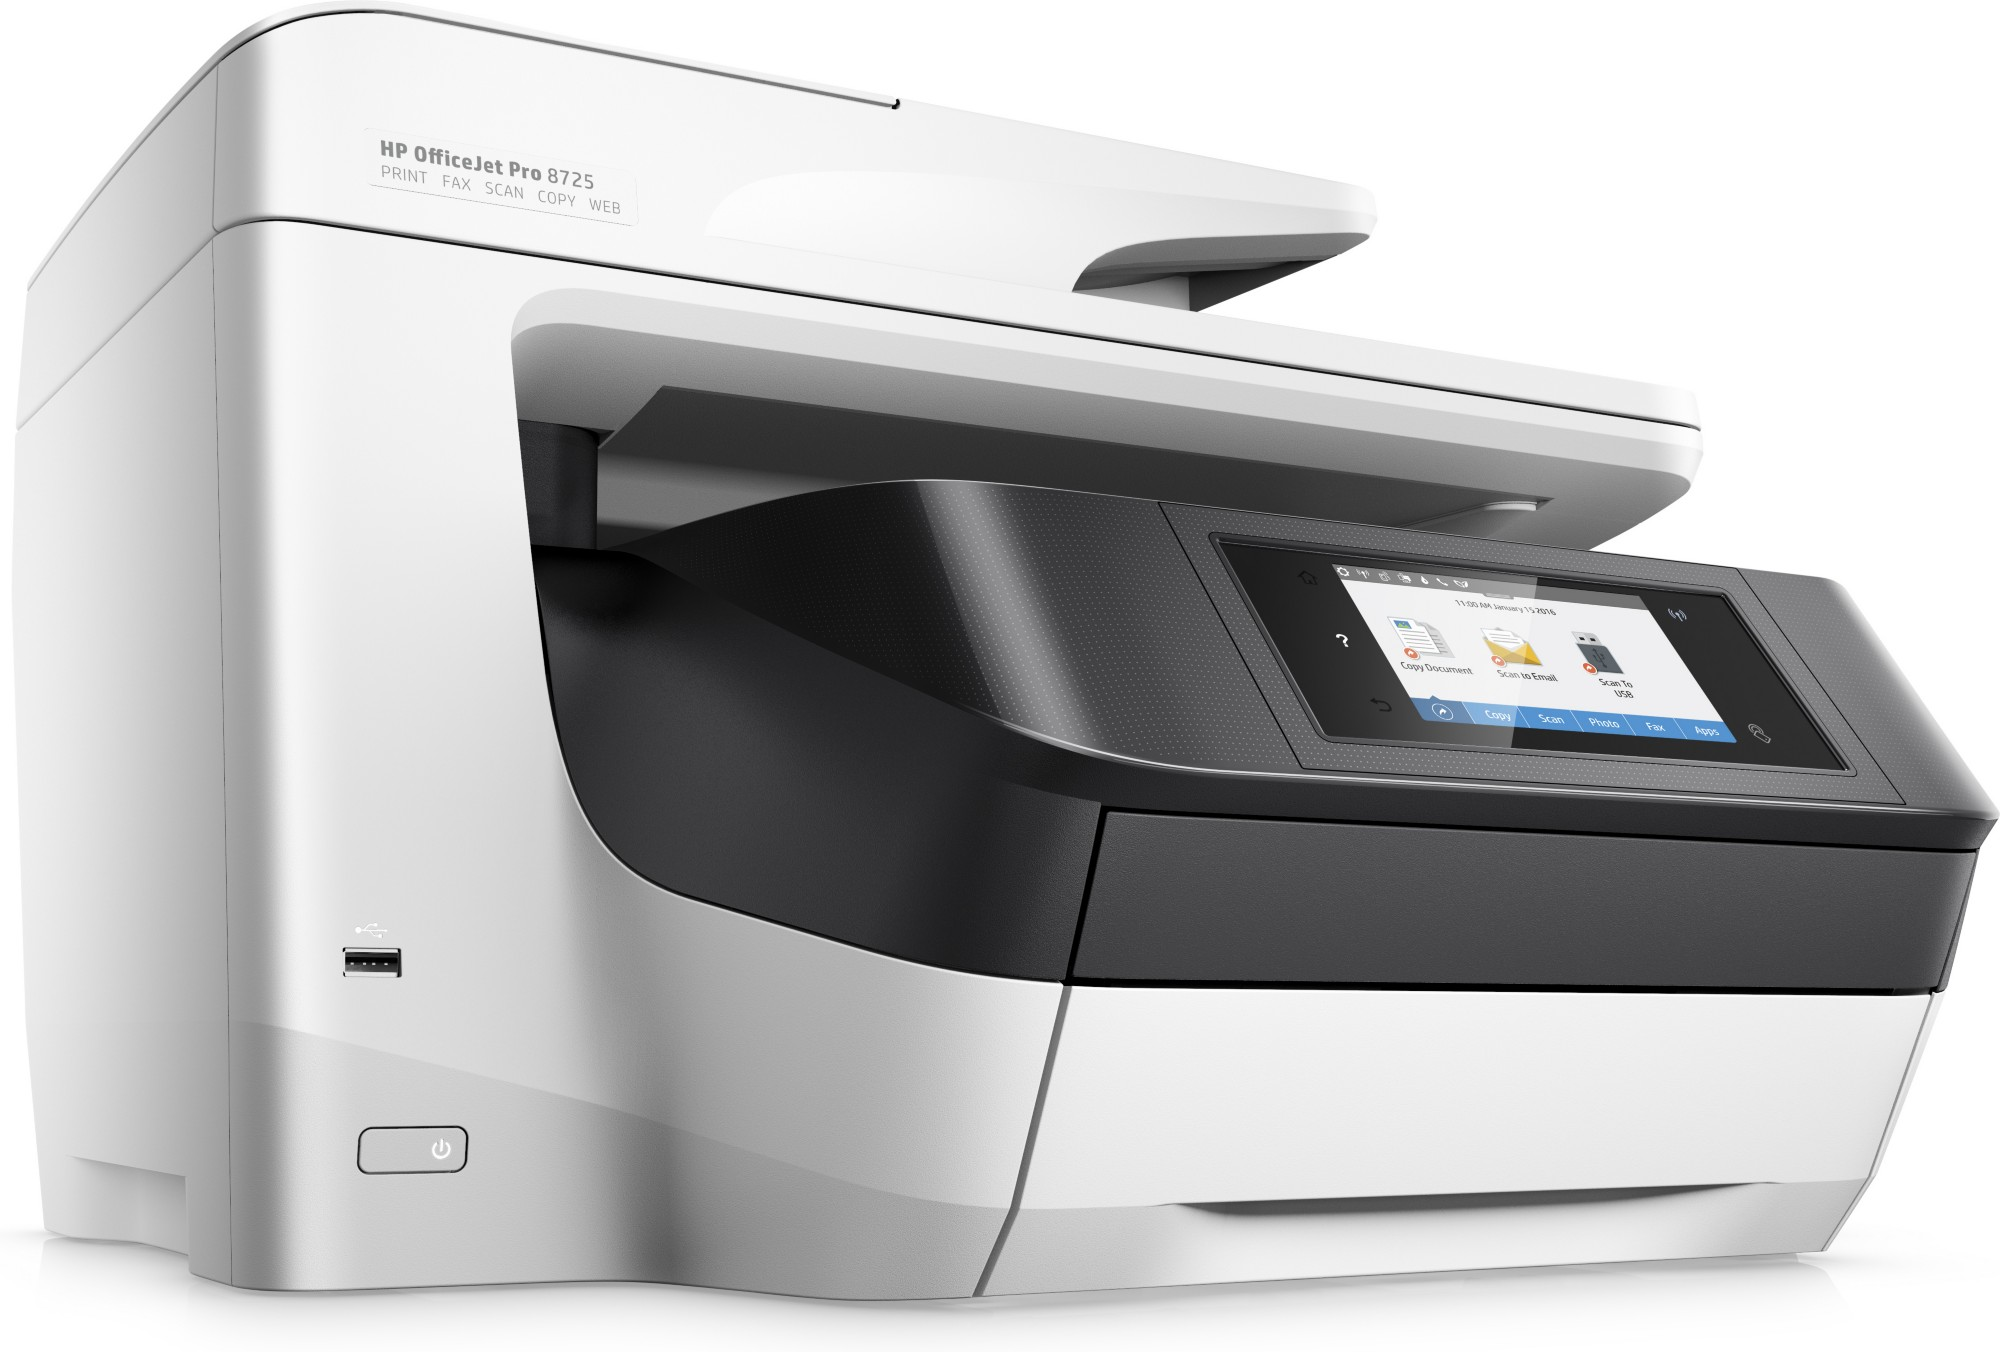 HP OFFICEJET PRO 8725 WINDOWS 8 DRIVER DOWNLOAD